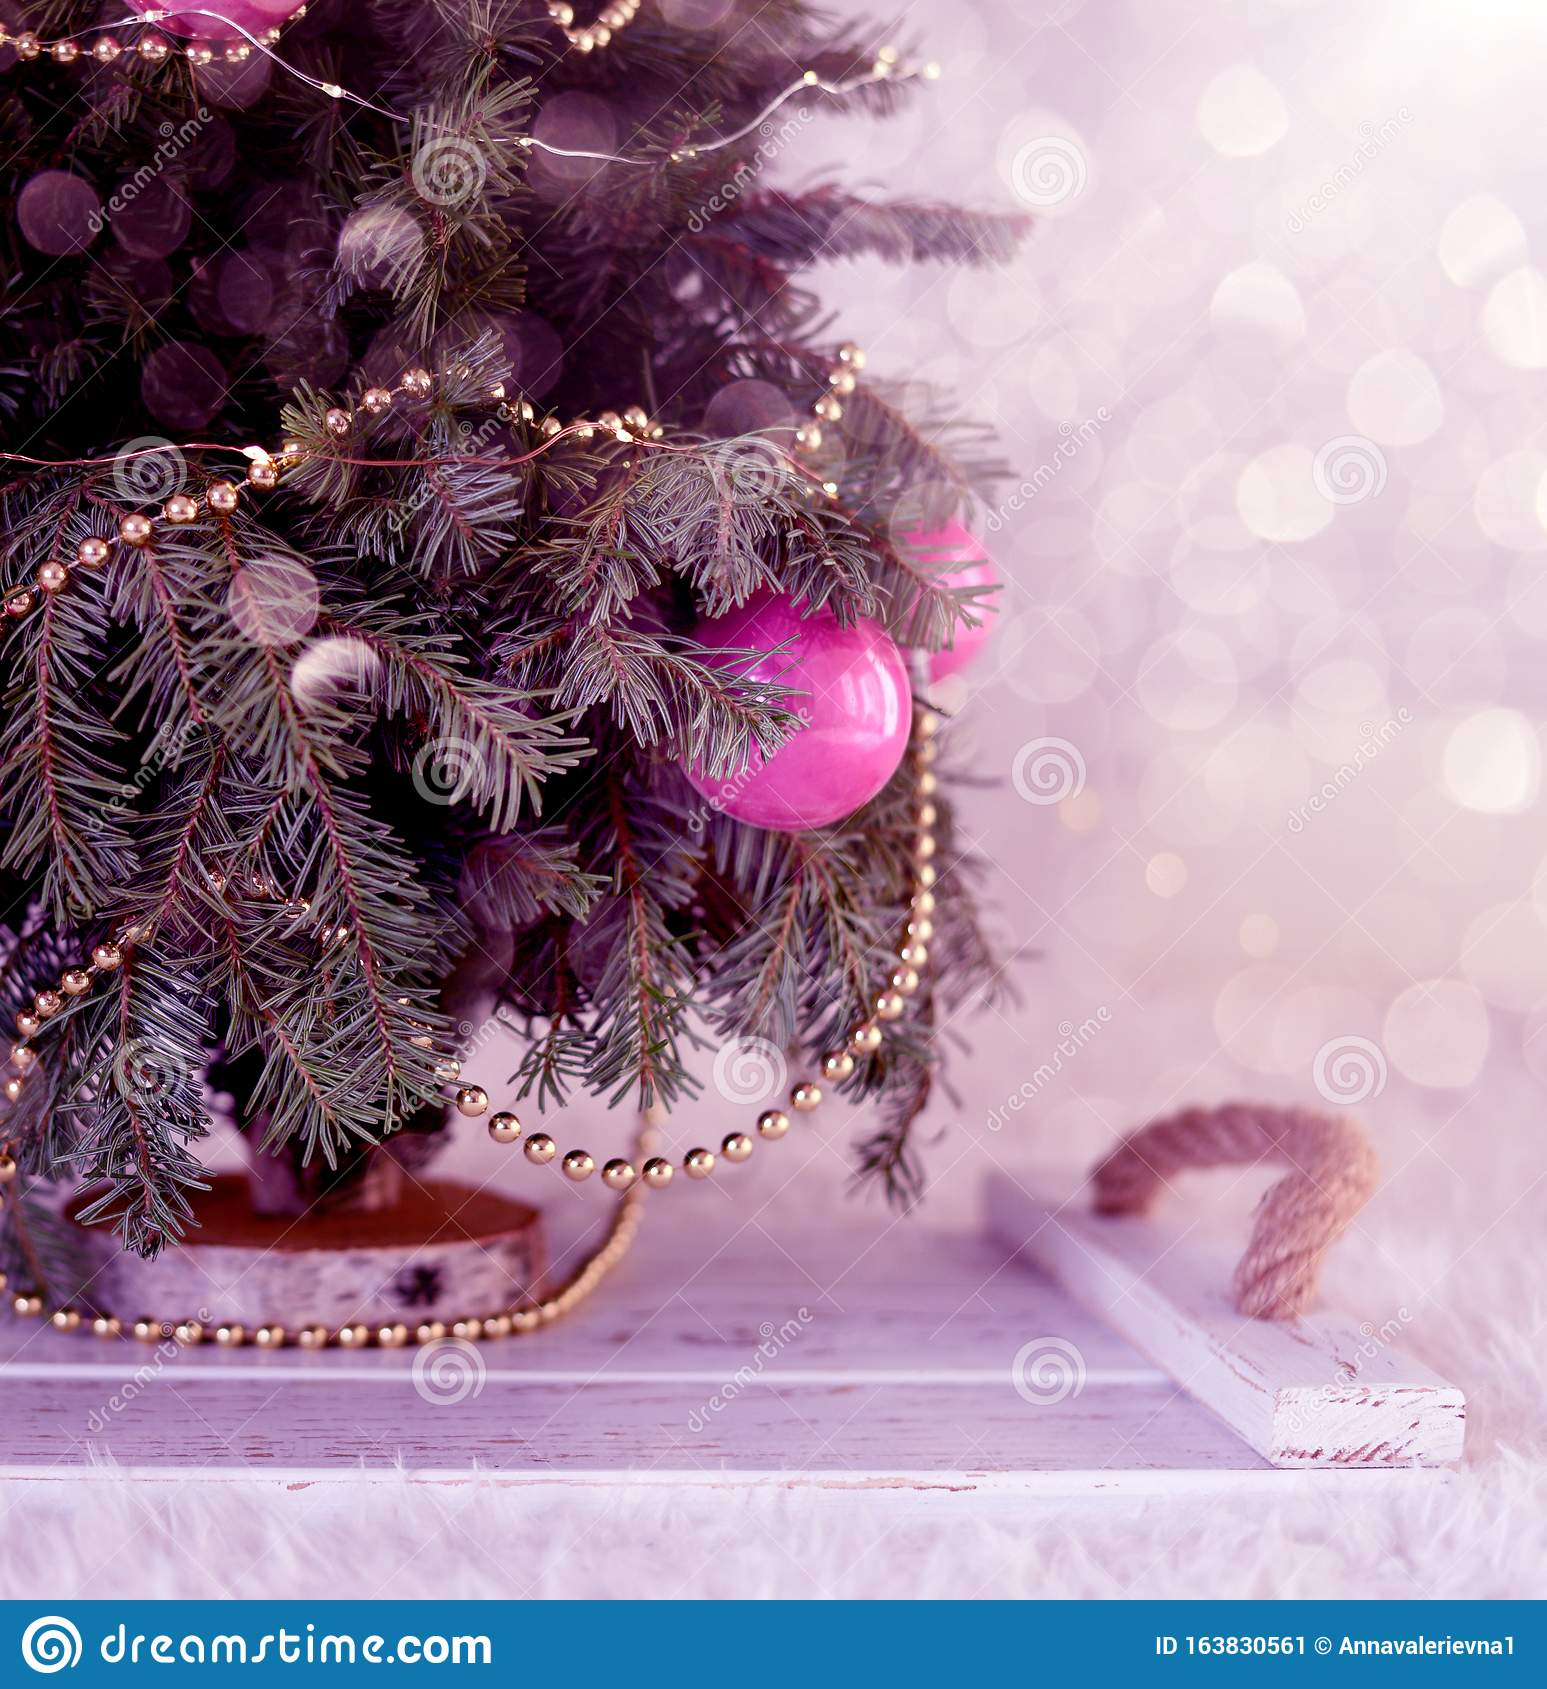 New Year`s Christmas scenery. Christmas tree branches with toys and sparkling lights.